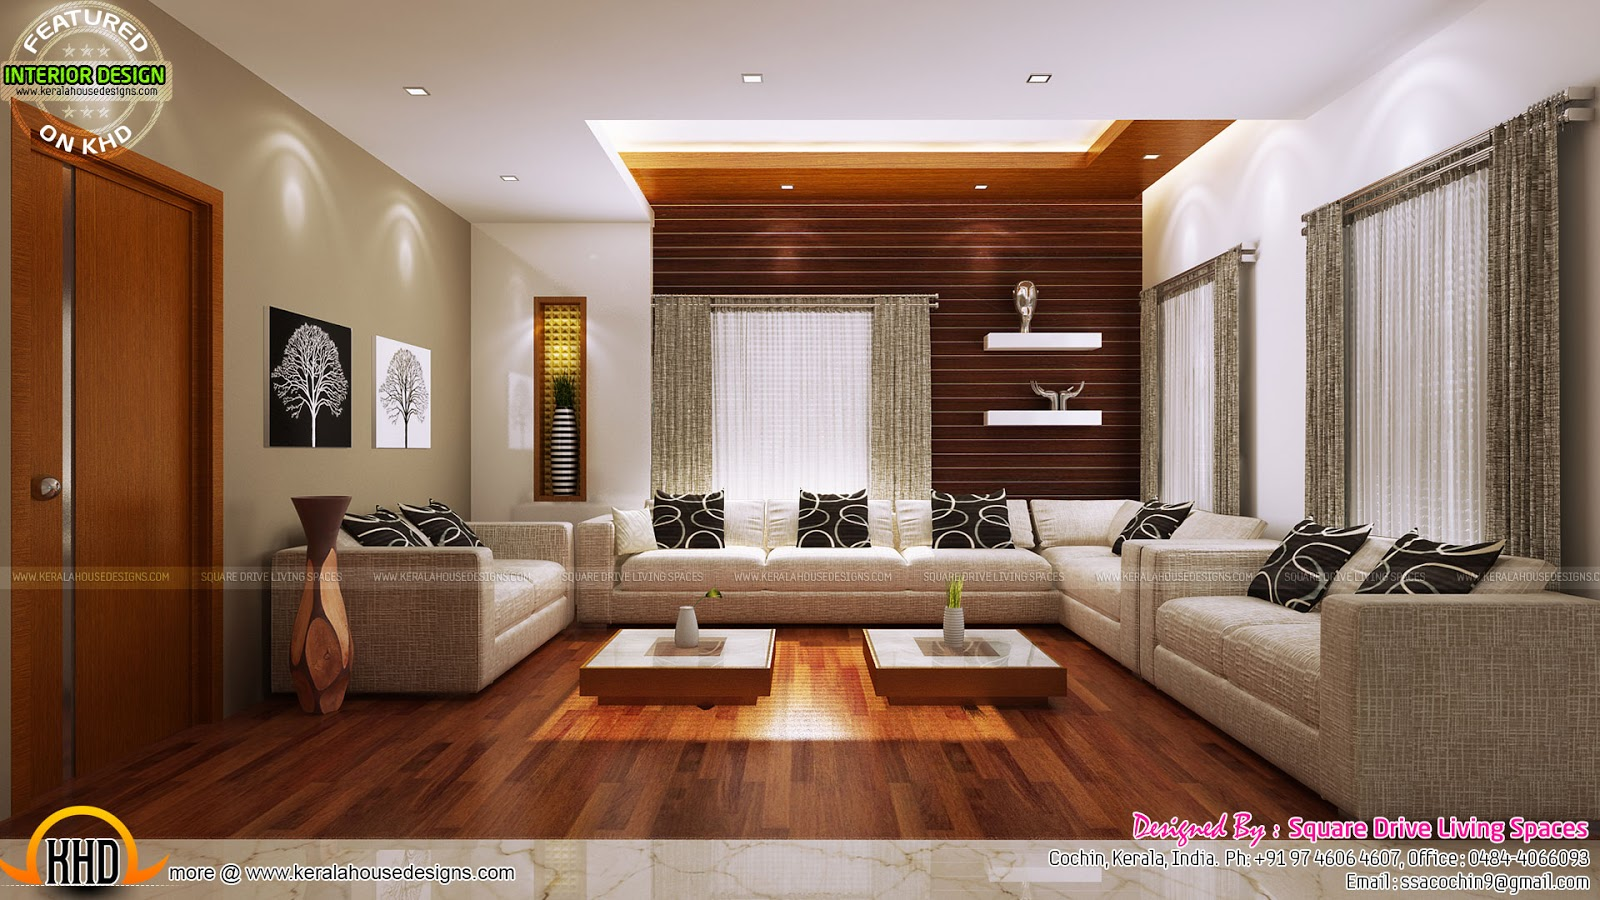 Excellent kerala interior design kerala home design and for Dining room ideas kerala